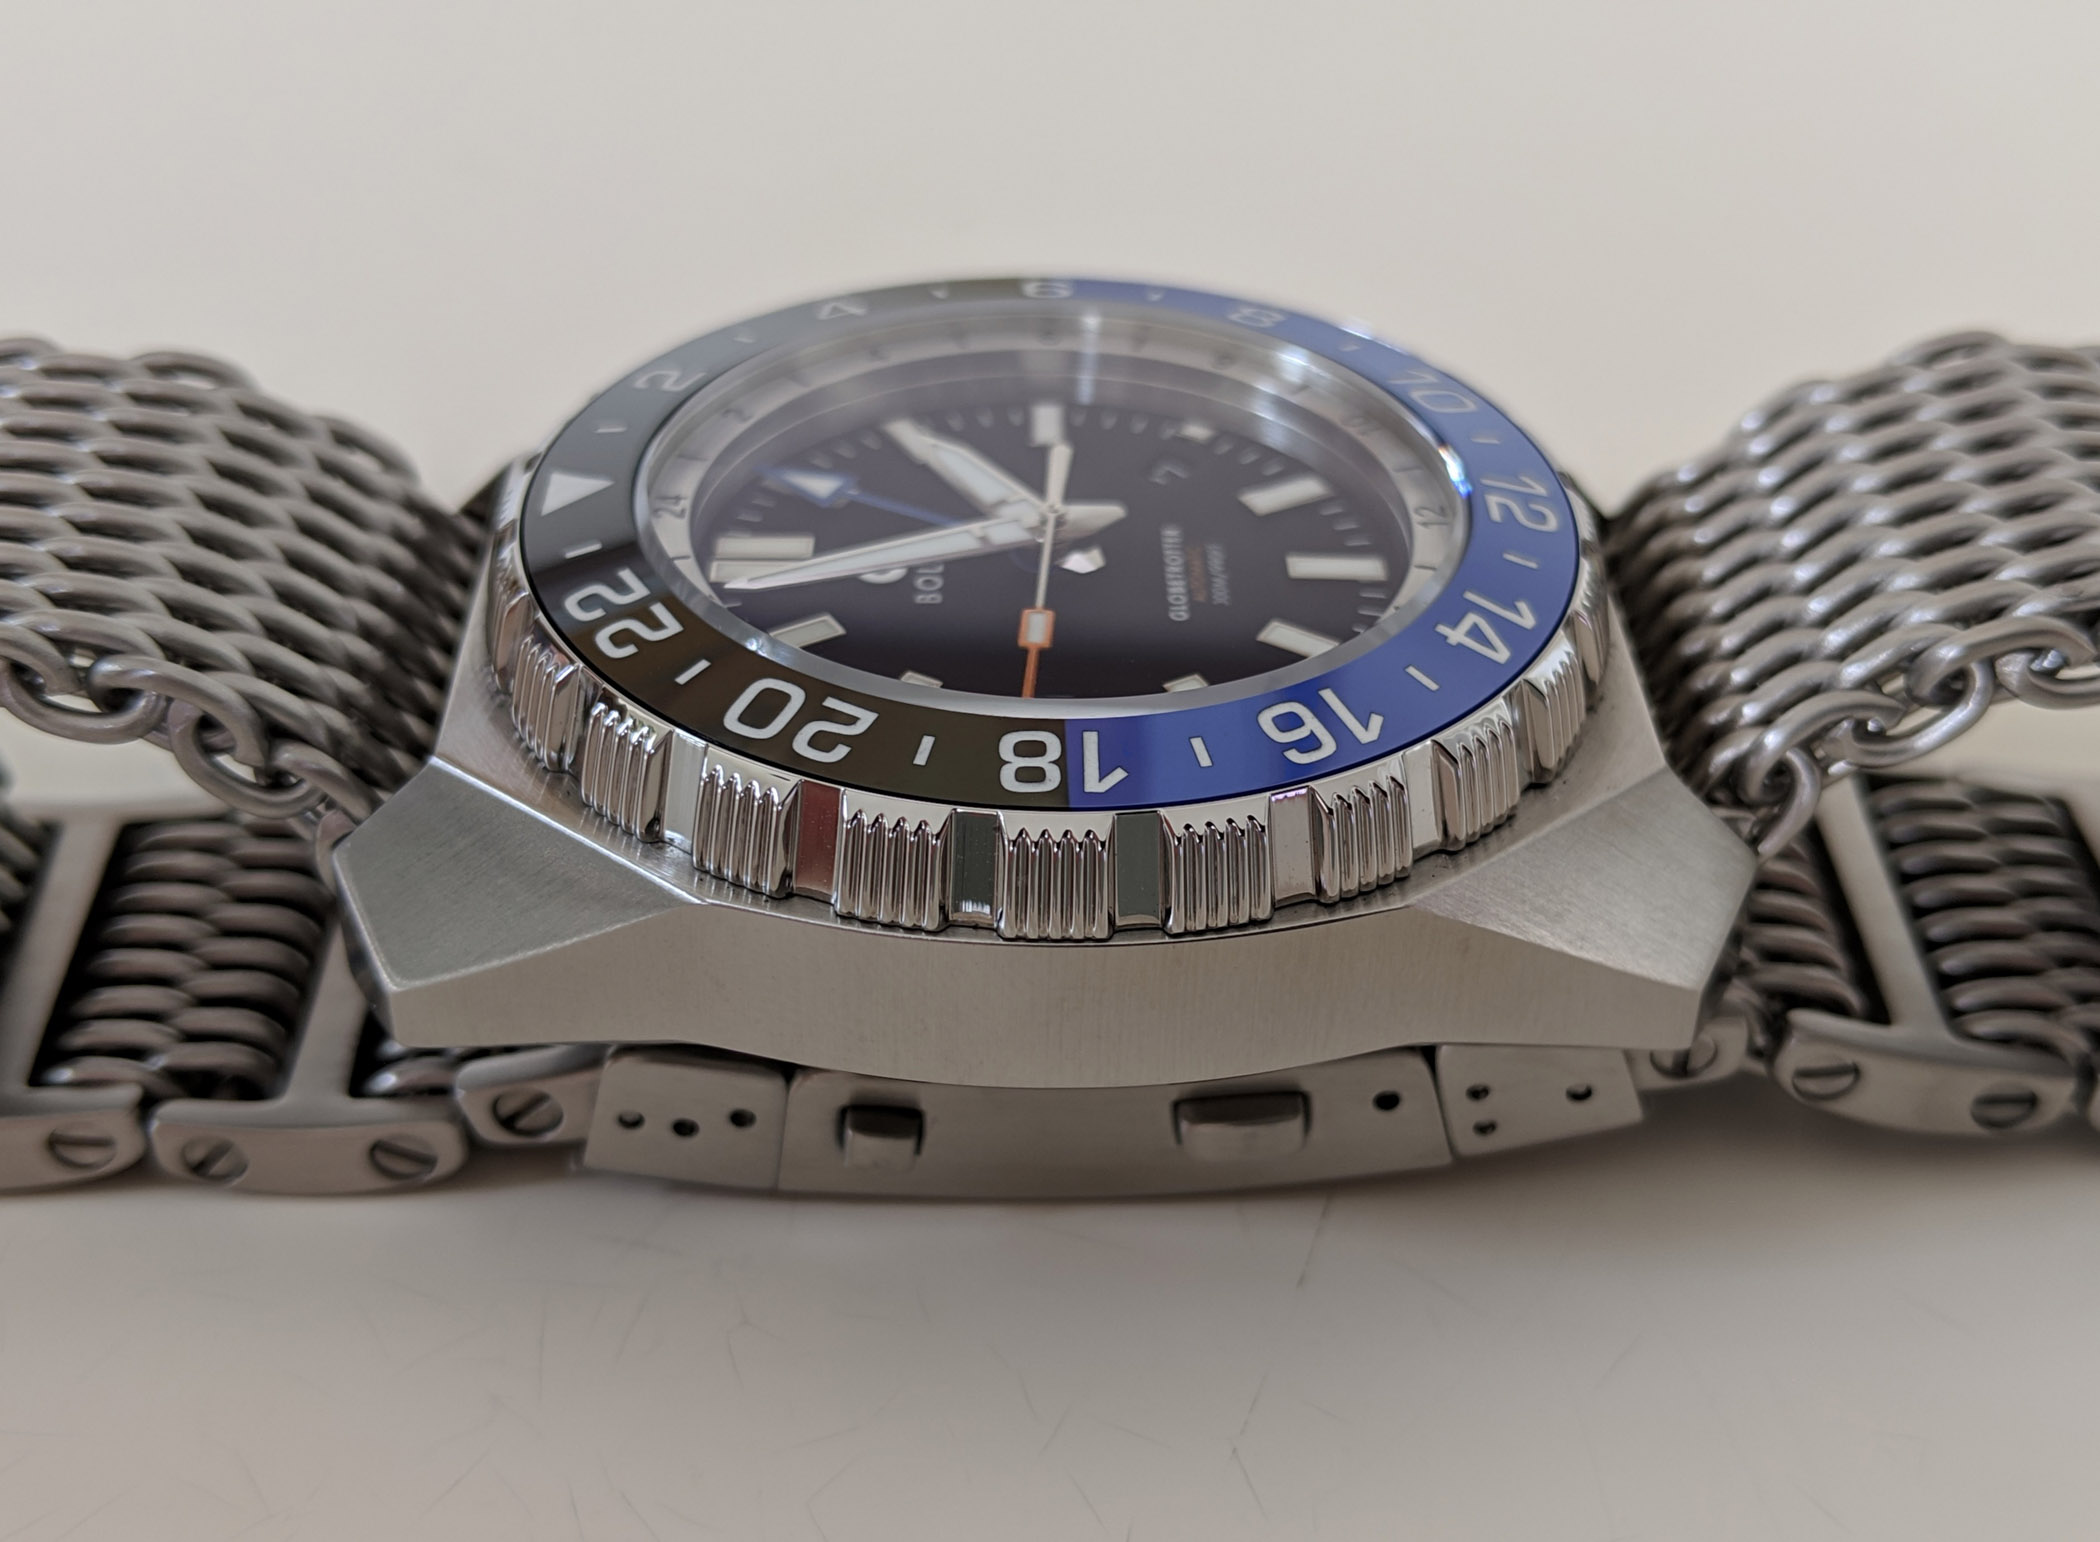 BOLDR Globetrotter GMT review - 9